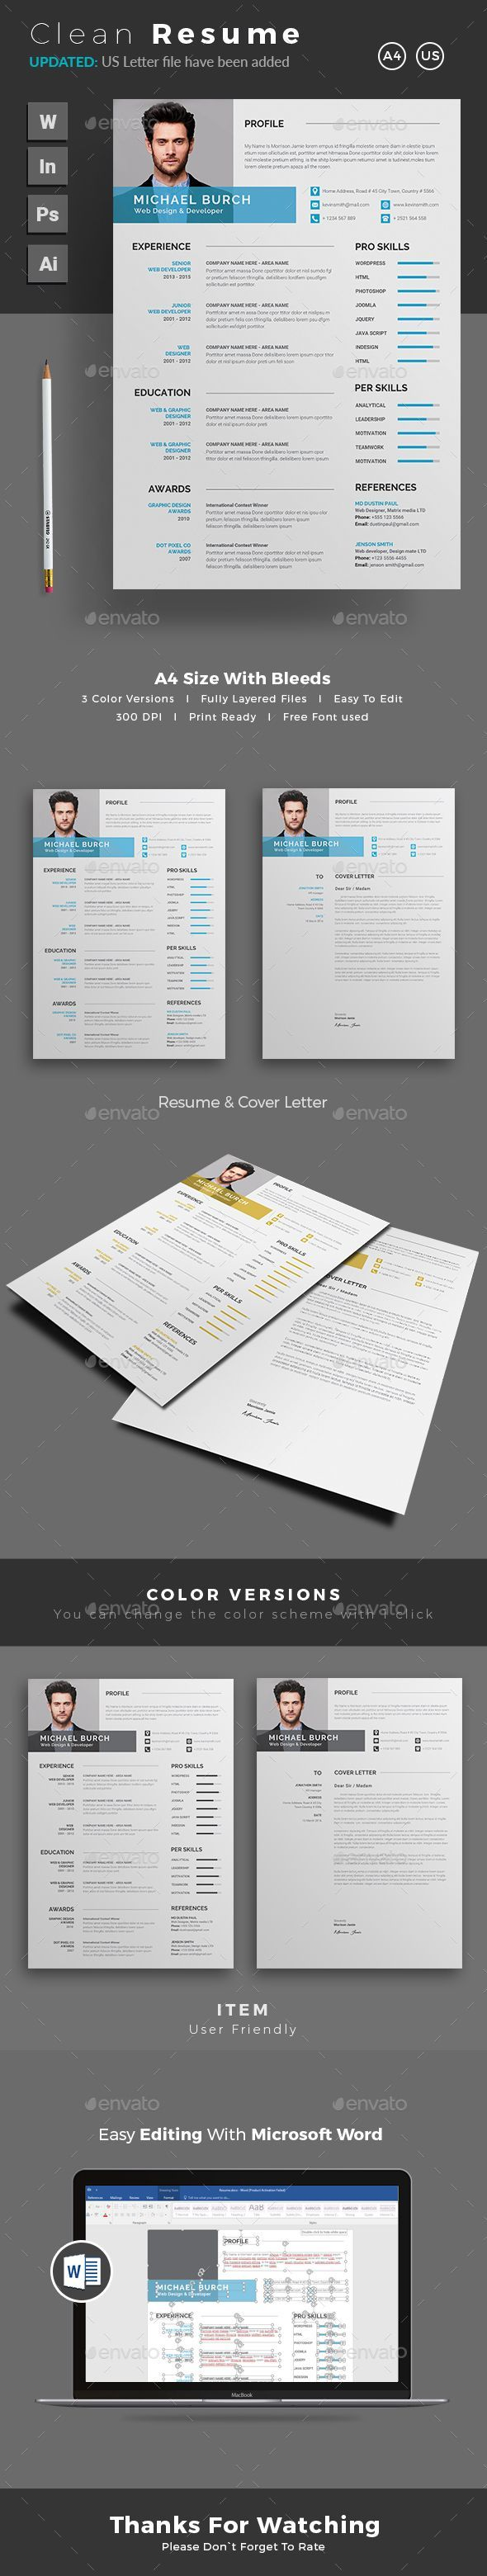 Resume 11 best Tech Resume images on